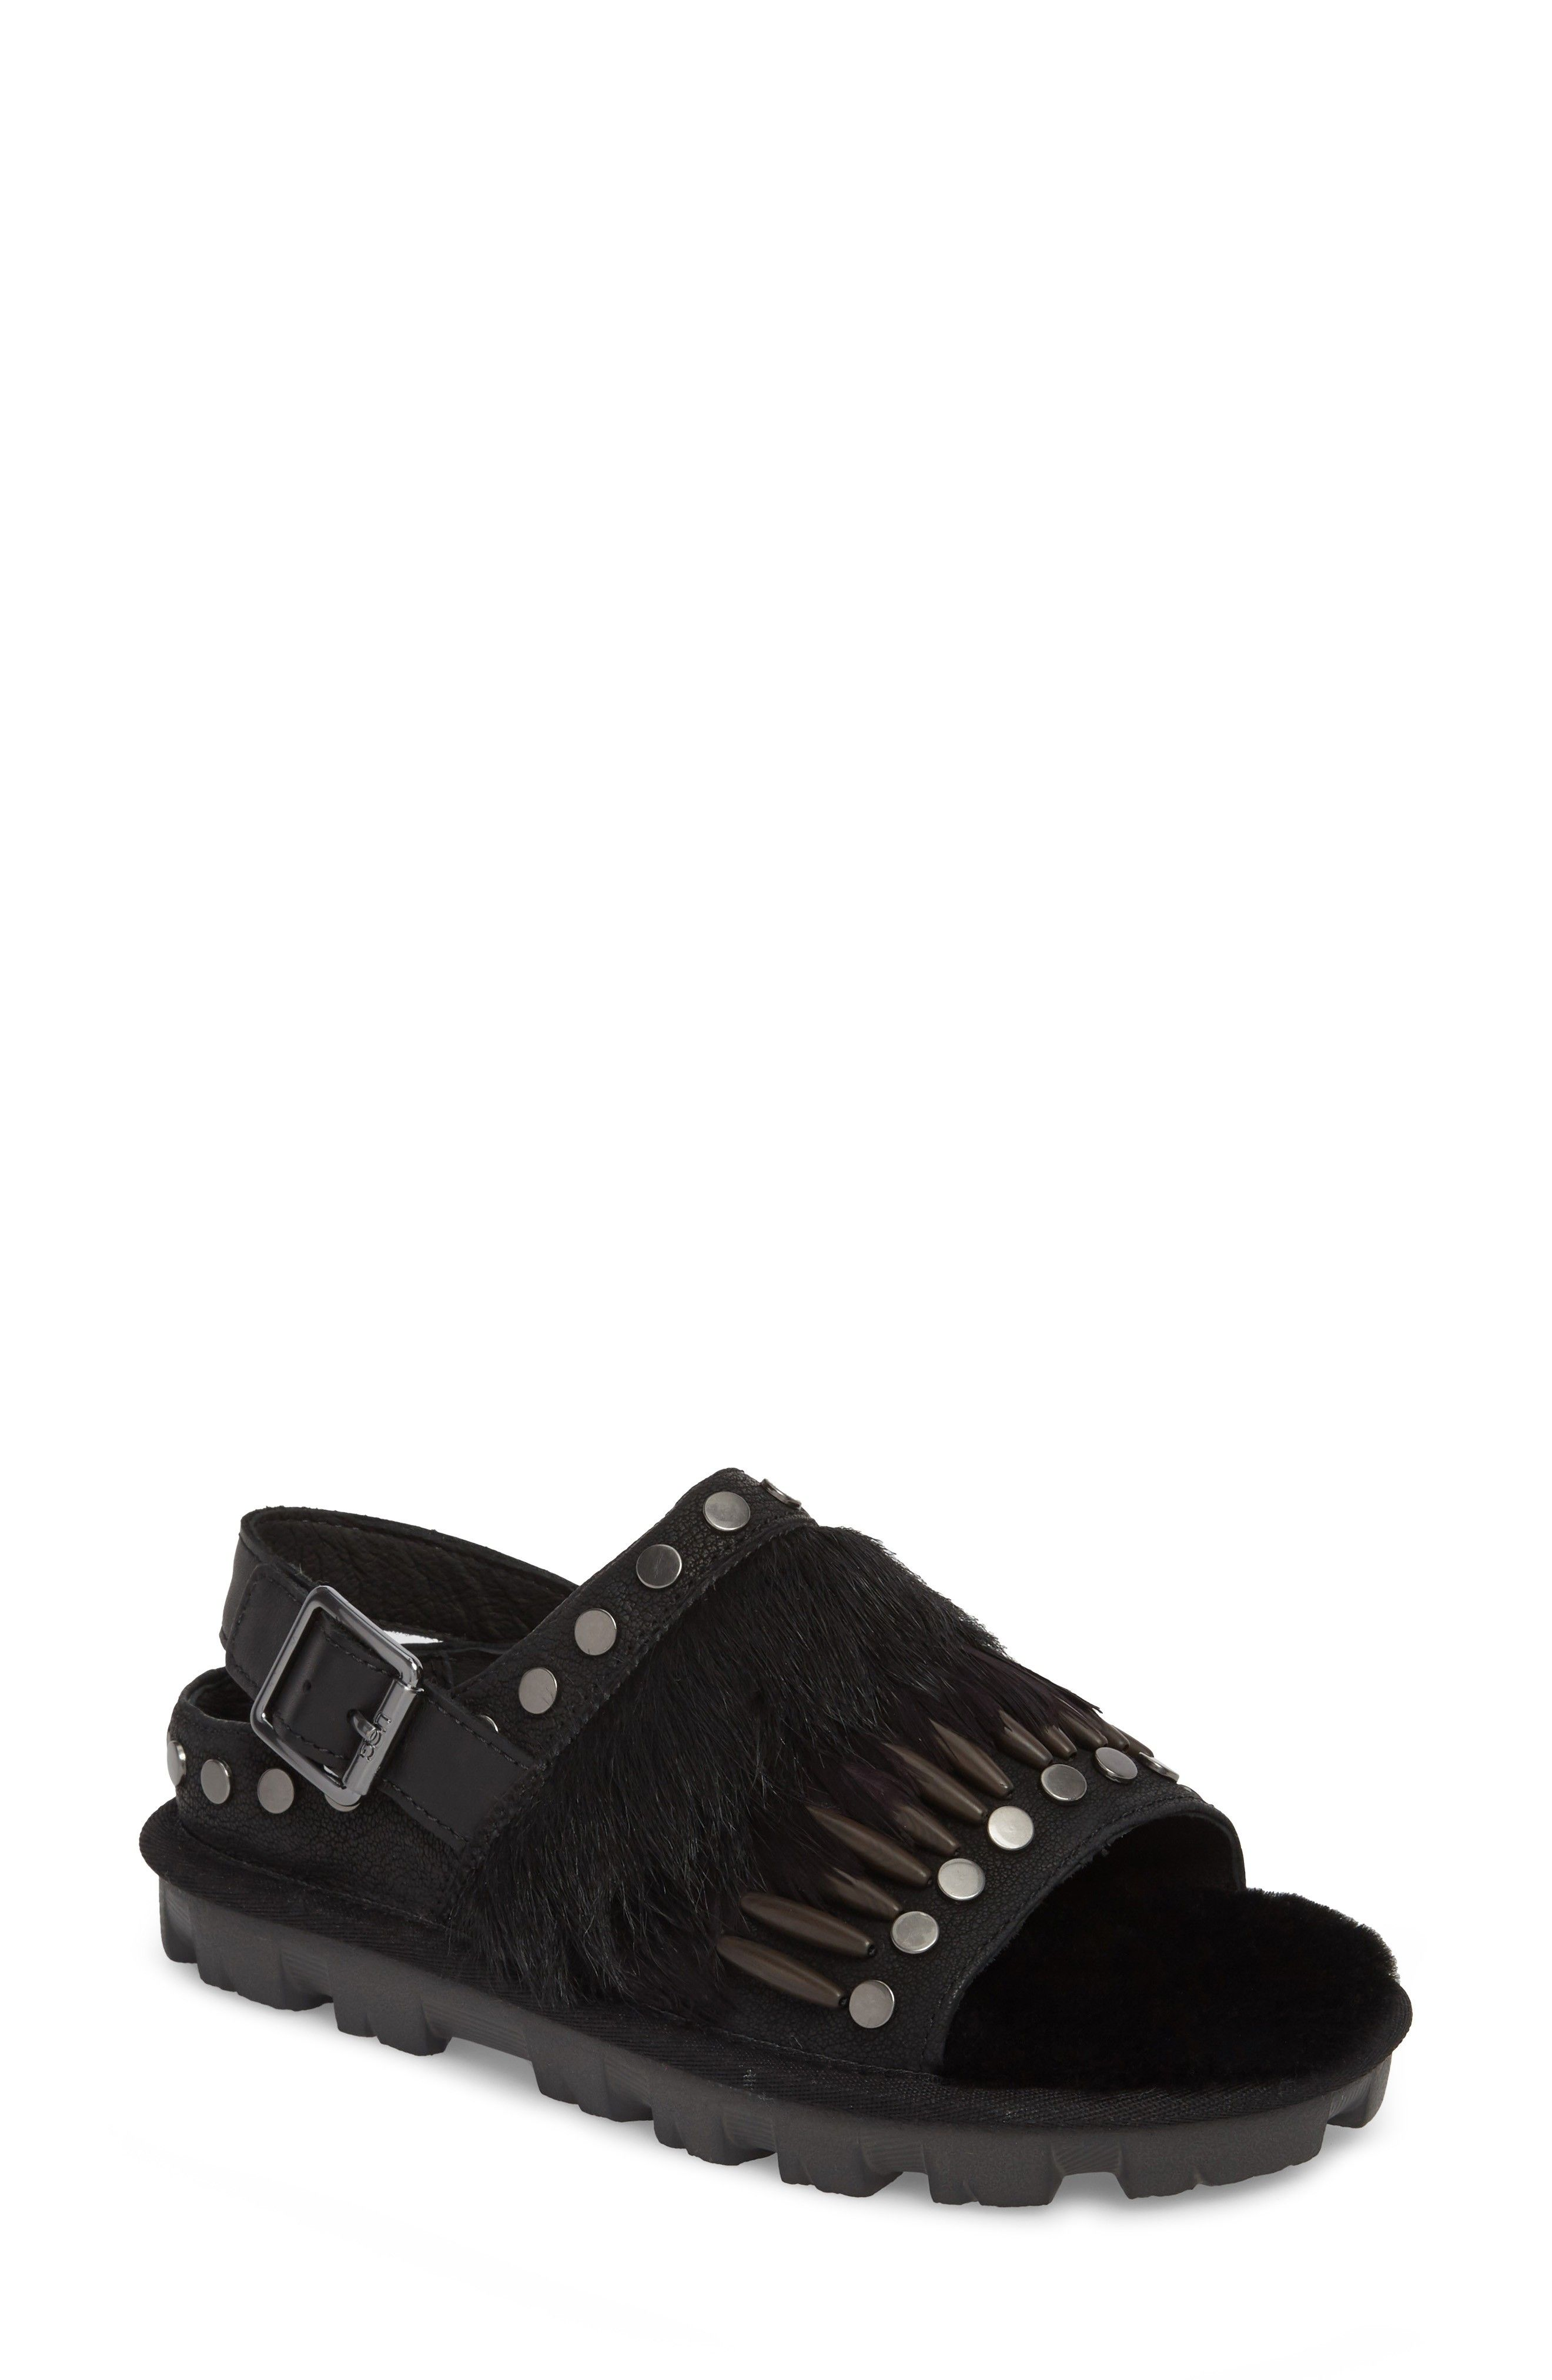 6b51a62b555 UGG   Biker Chic Genuine Shearling & Feather Sandal #Shoes #Sandals ...